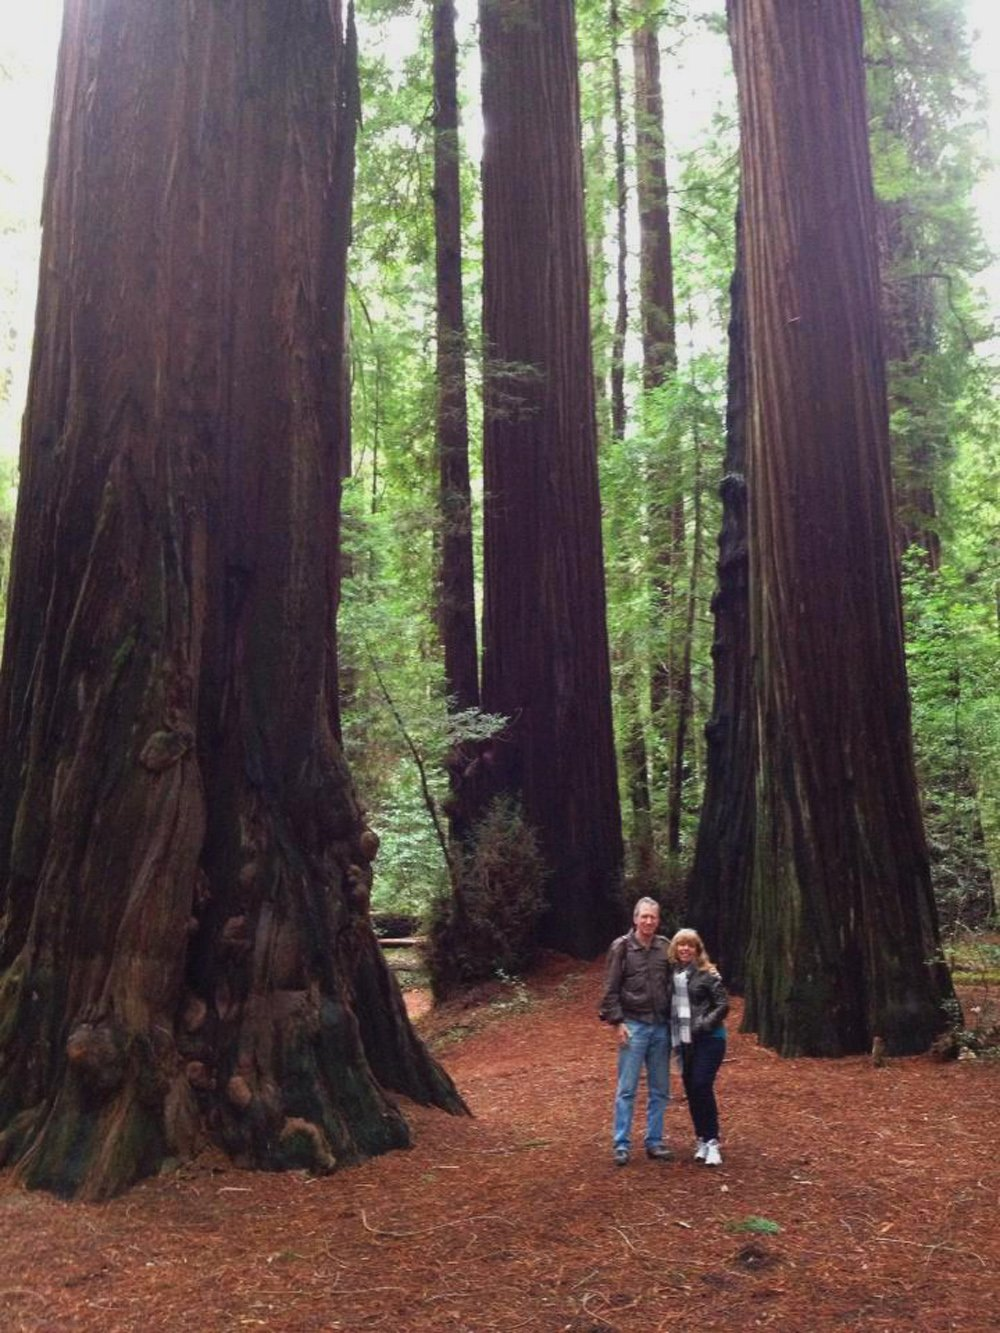 Giant redwoods at Humboldt Redwoods State Park